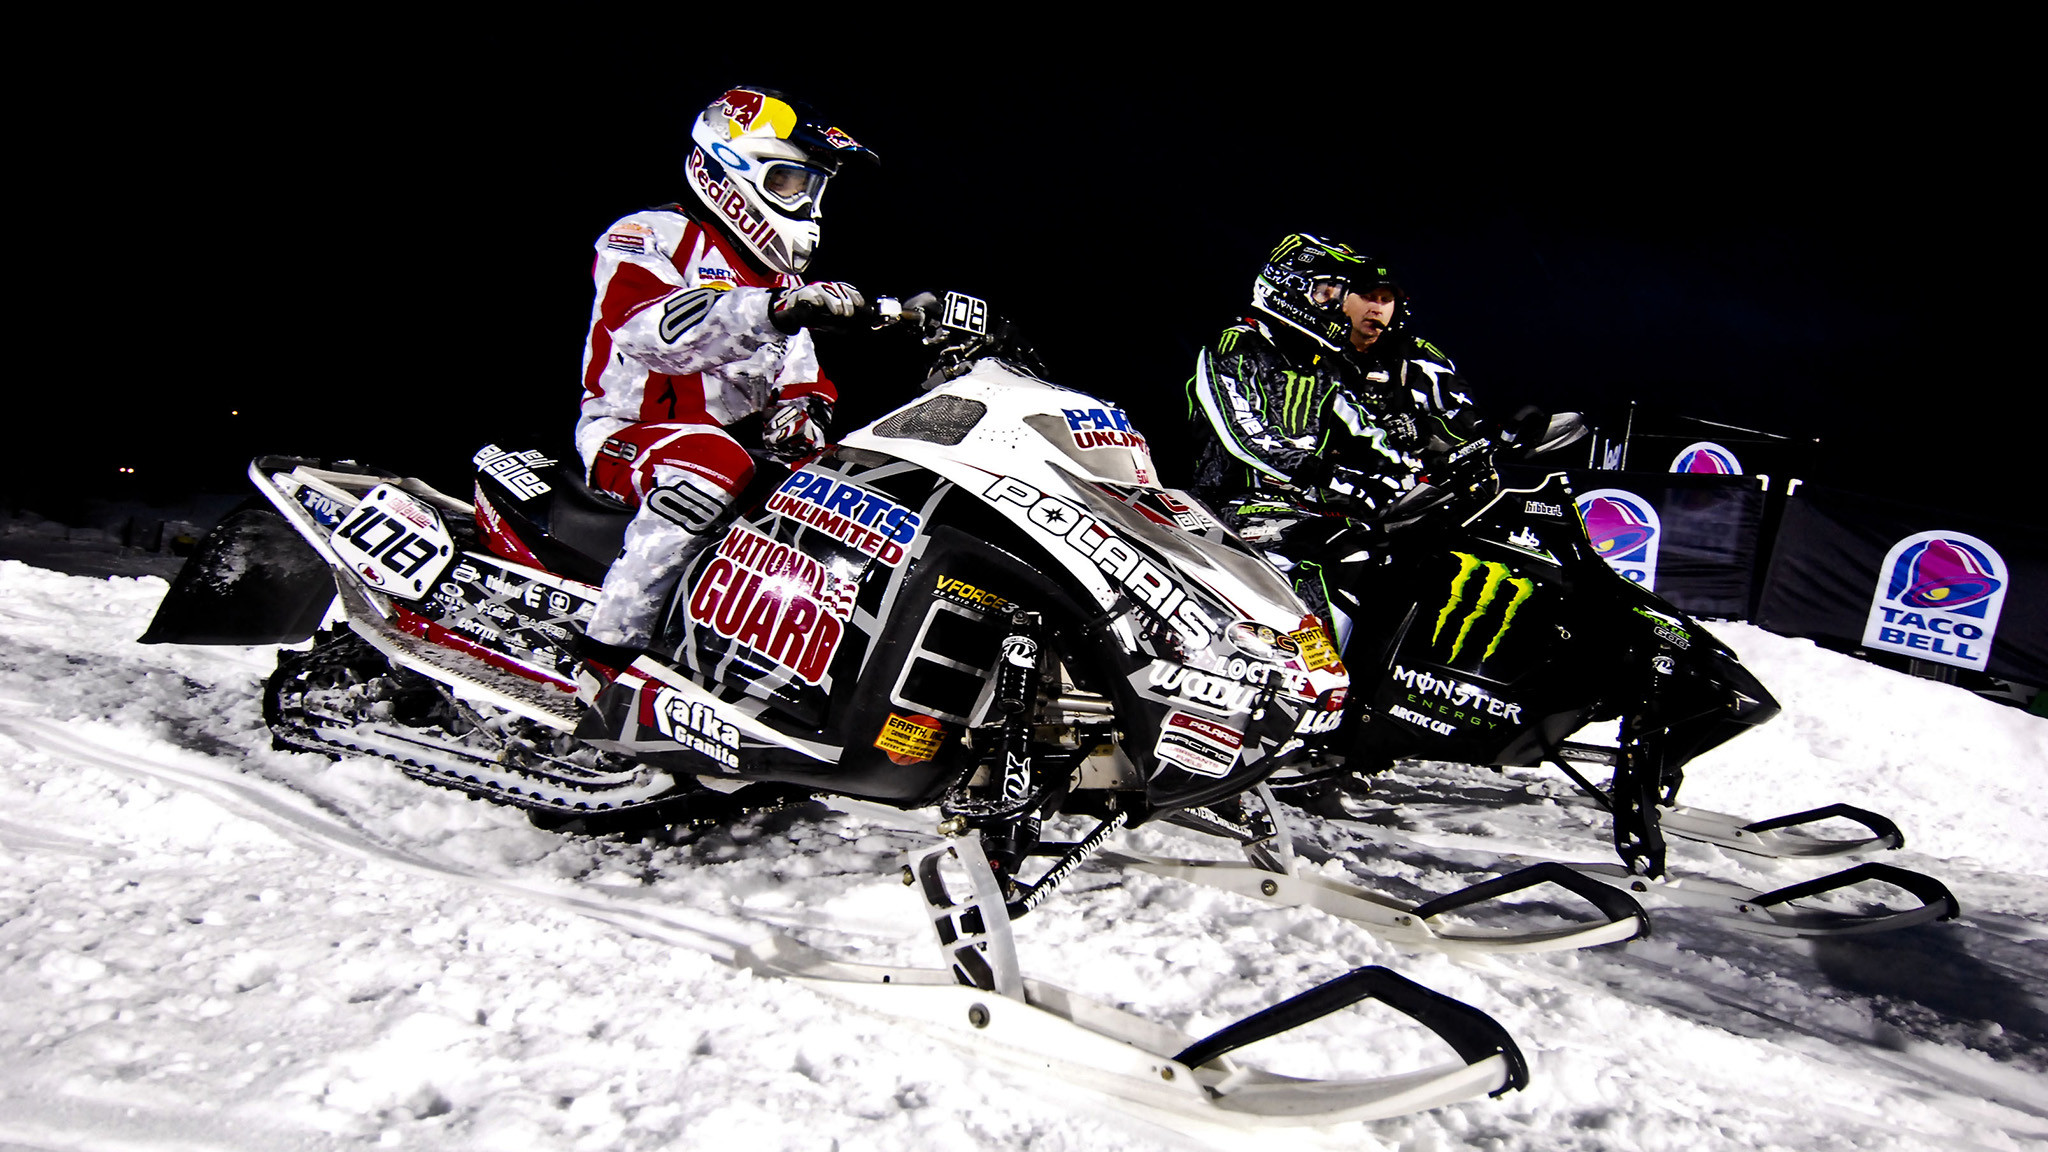 Snowmobile Knock Out, 2010